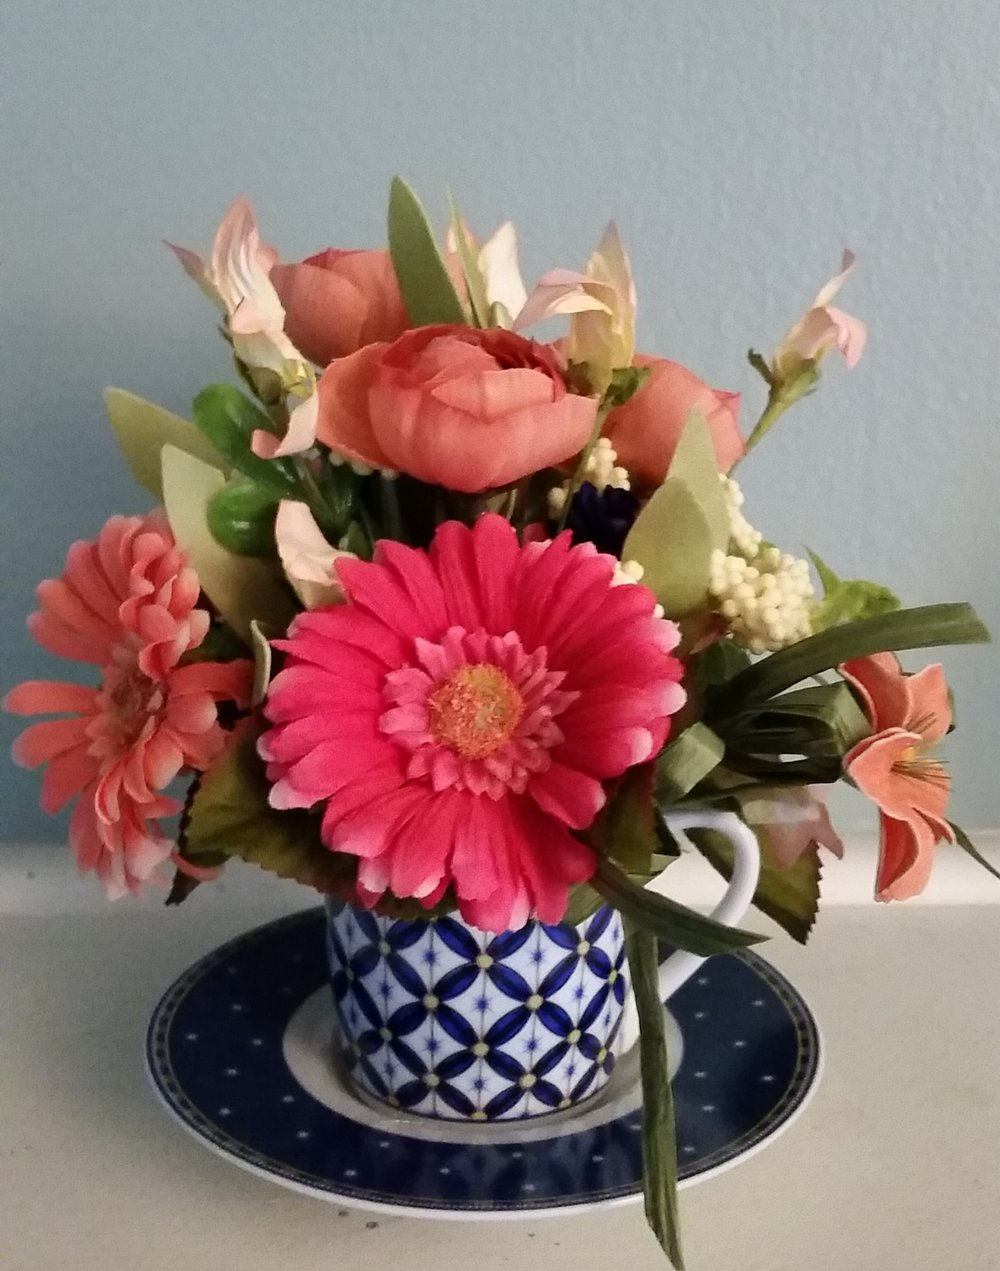 Tea Cup Arrangement - Starting at $18